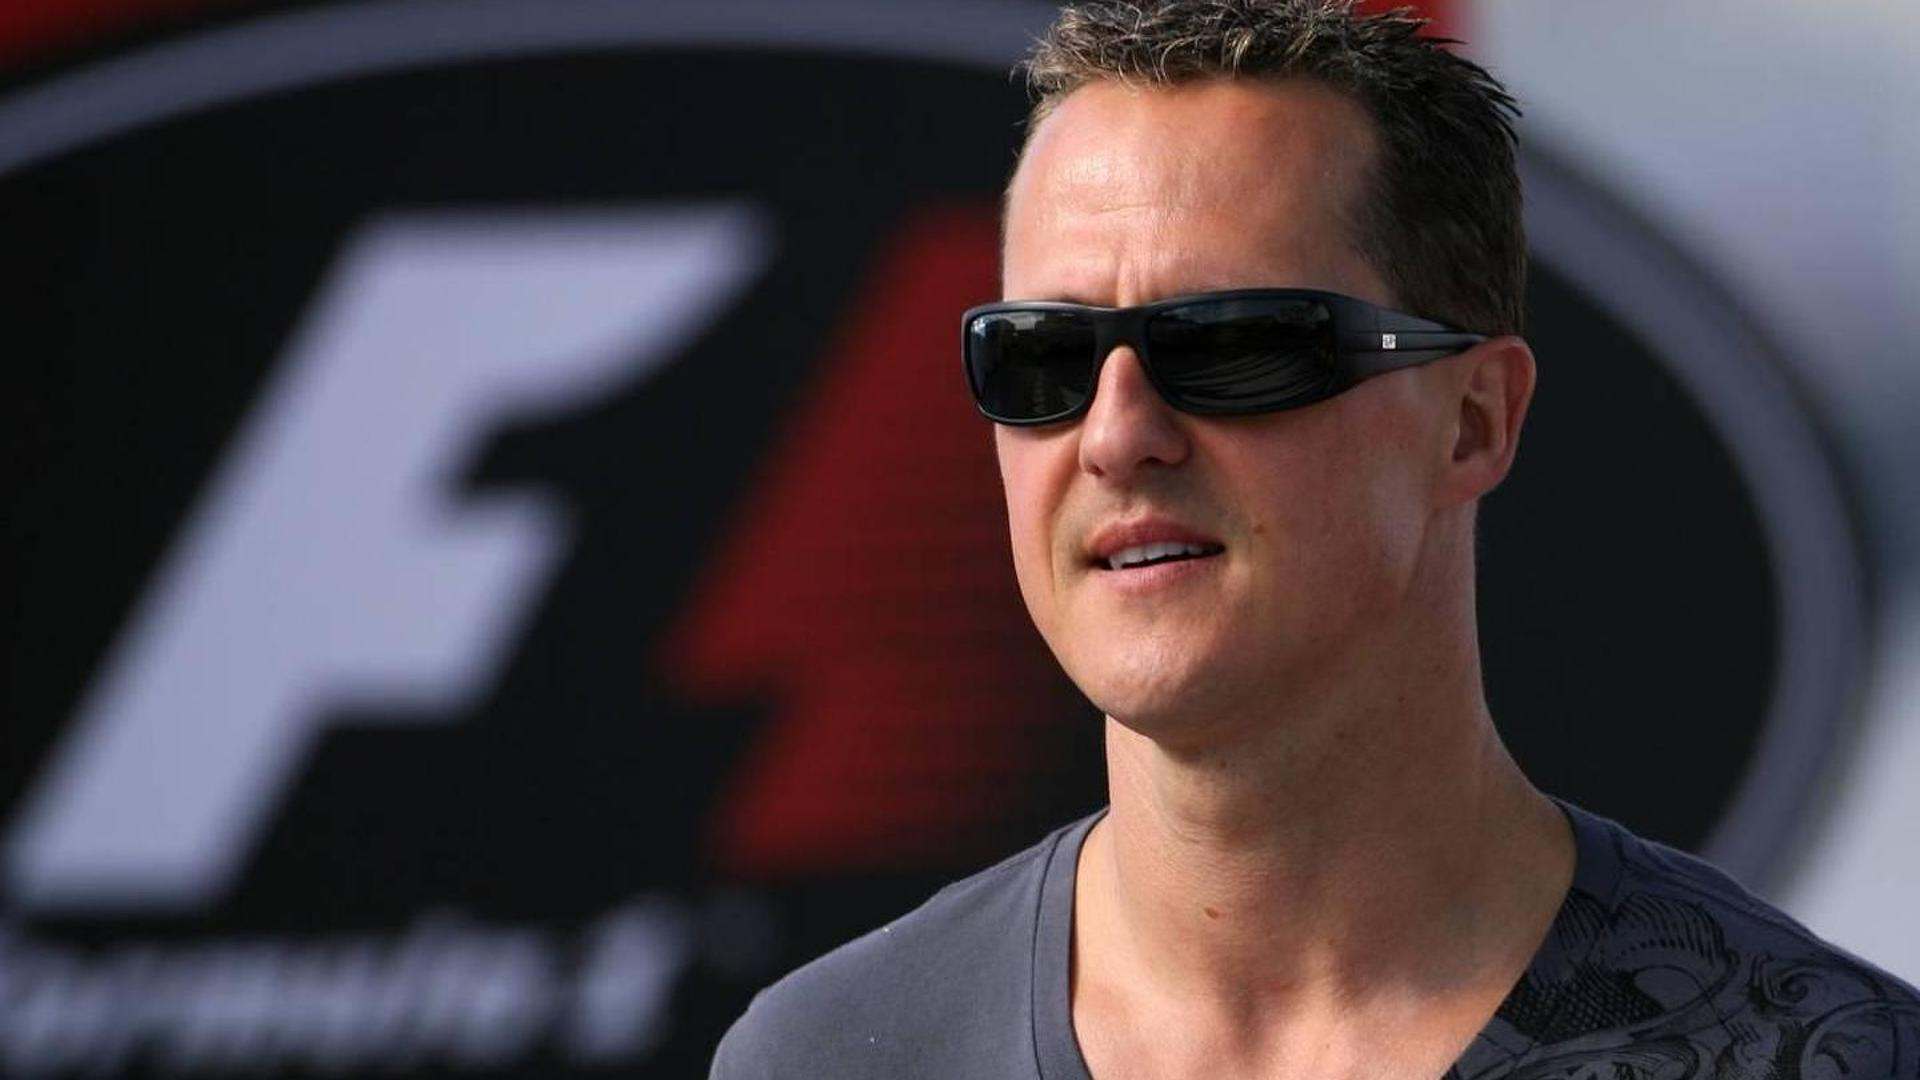 Schumacher accepts 'Man of the Year' award in Berlin